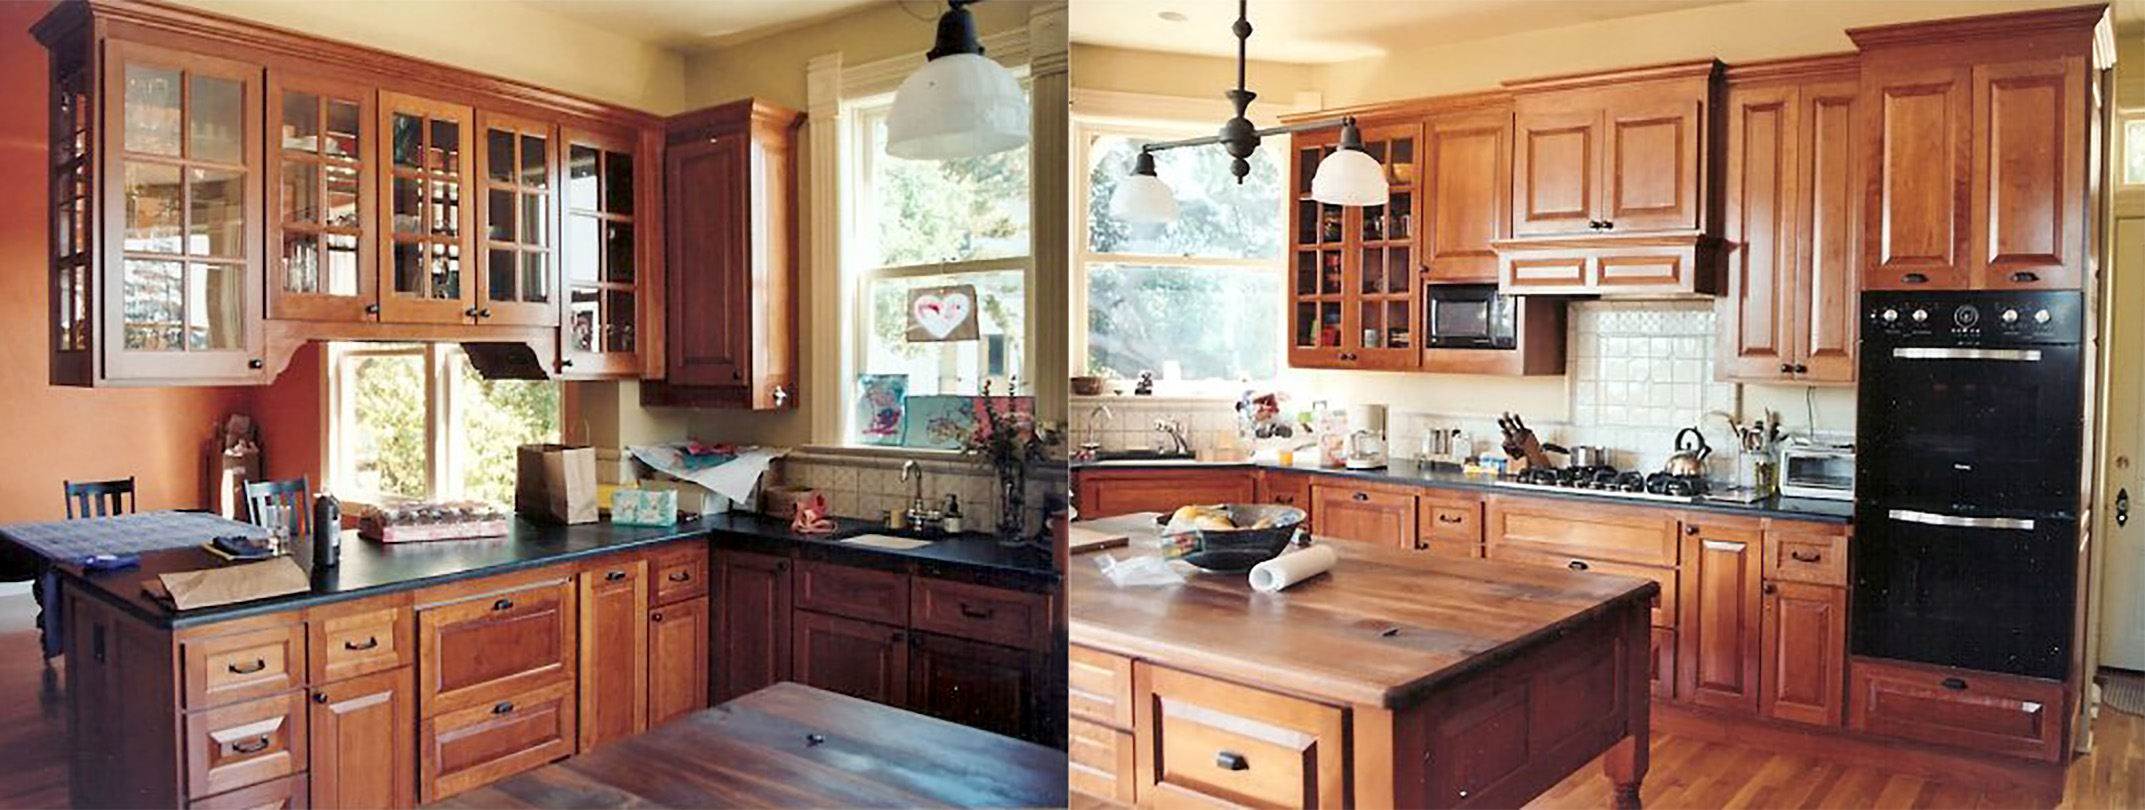 Kitchen in Cherry with classic raised panels